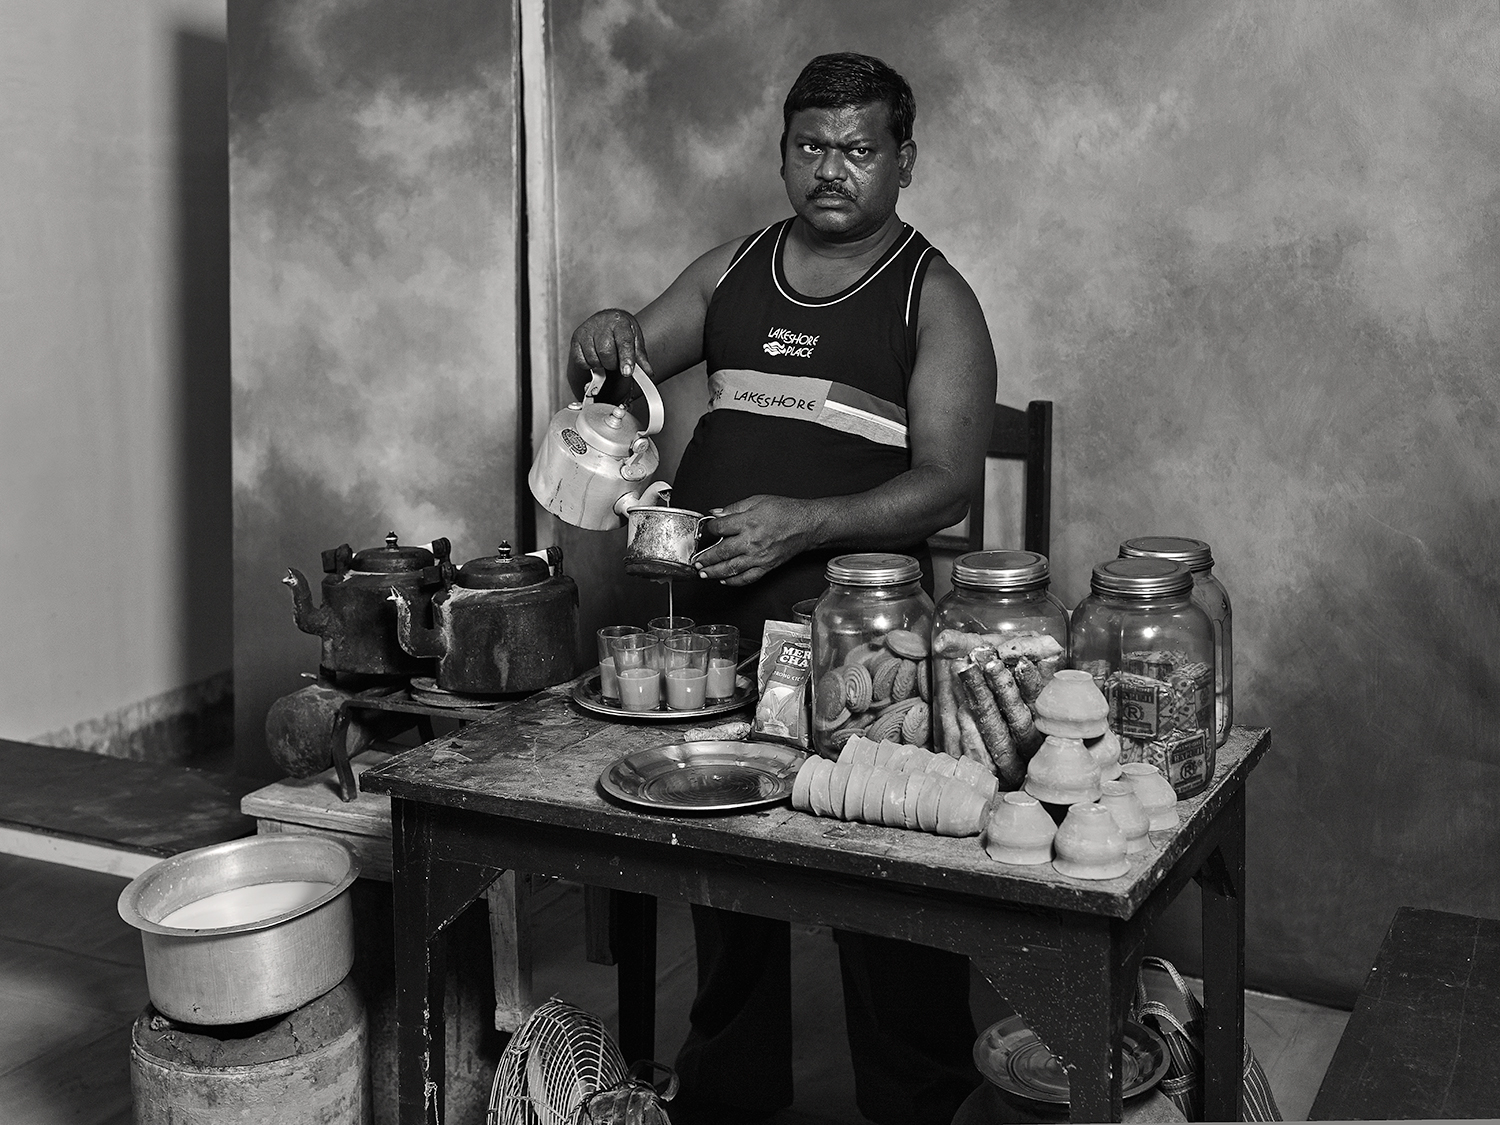 TEA STALL OWNER, $210 WEEKLY, 2012